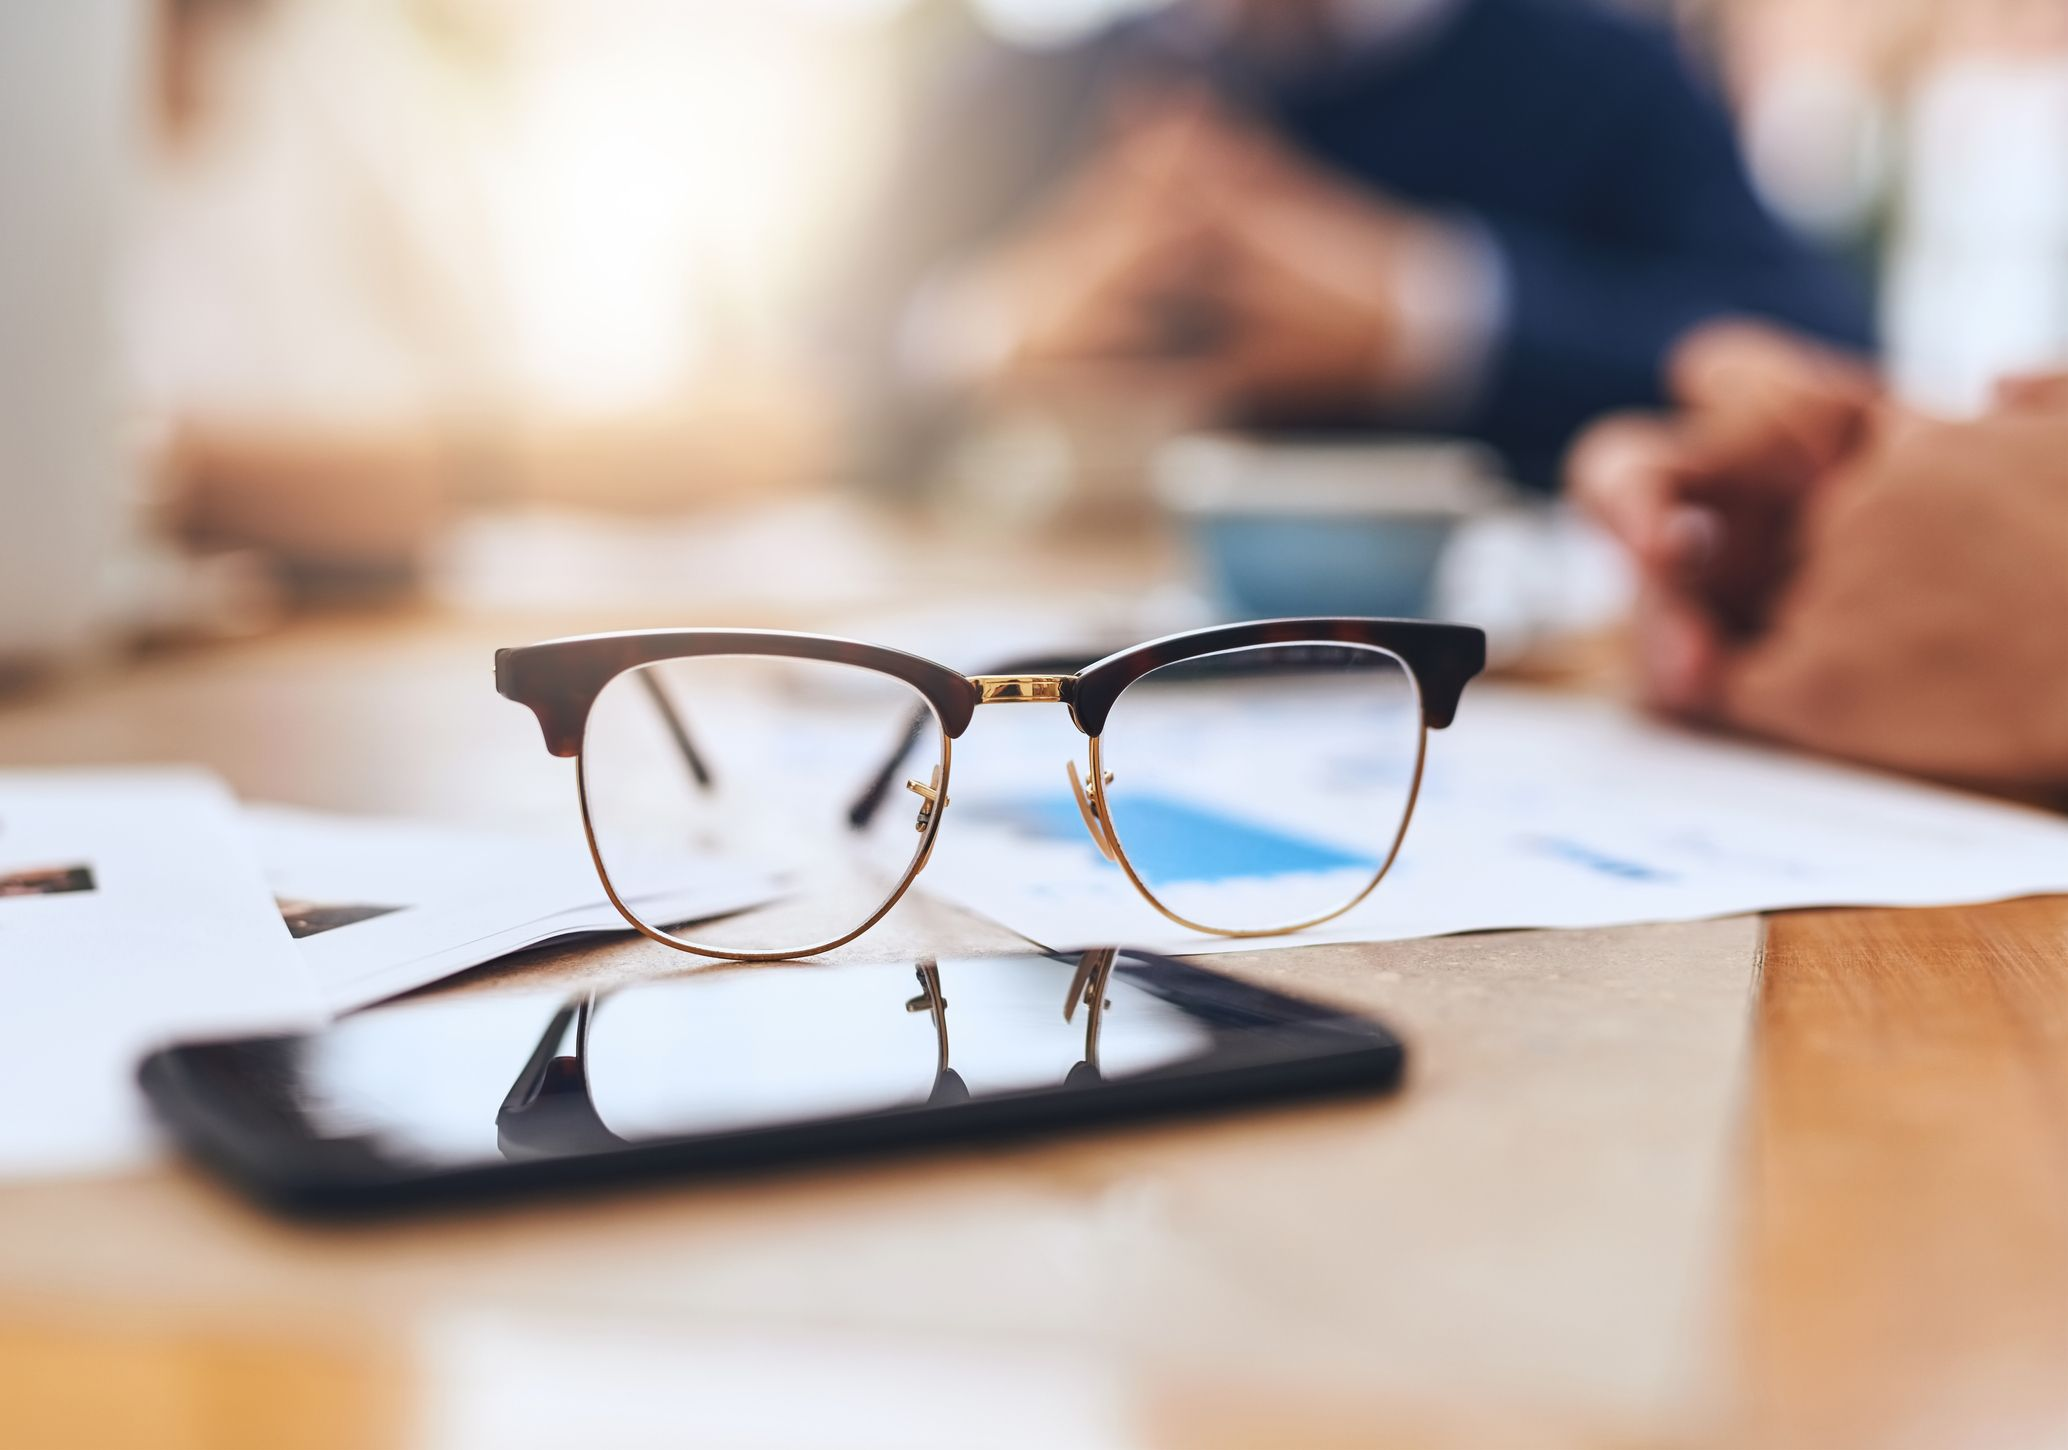 7 Best Places to Buy Glasses Online in 2019